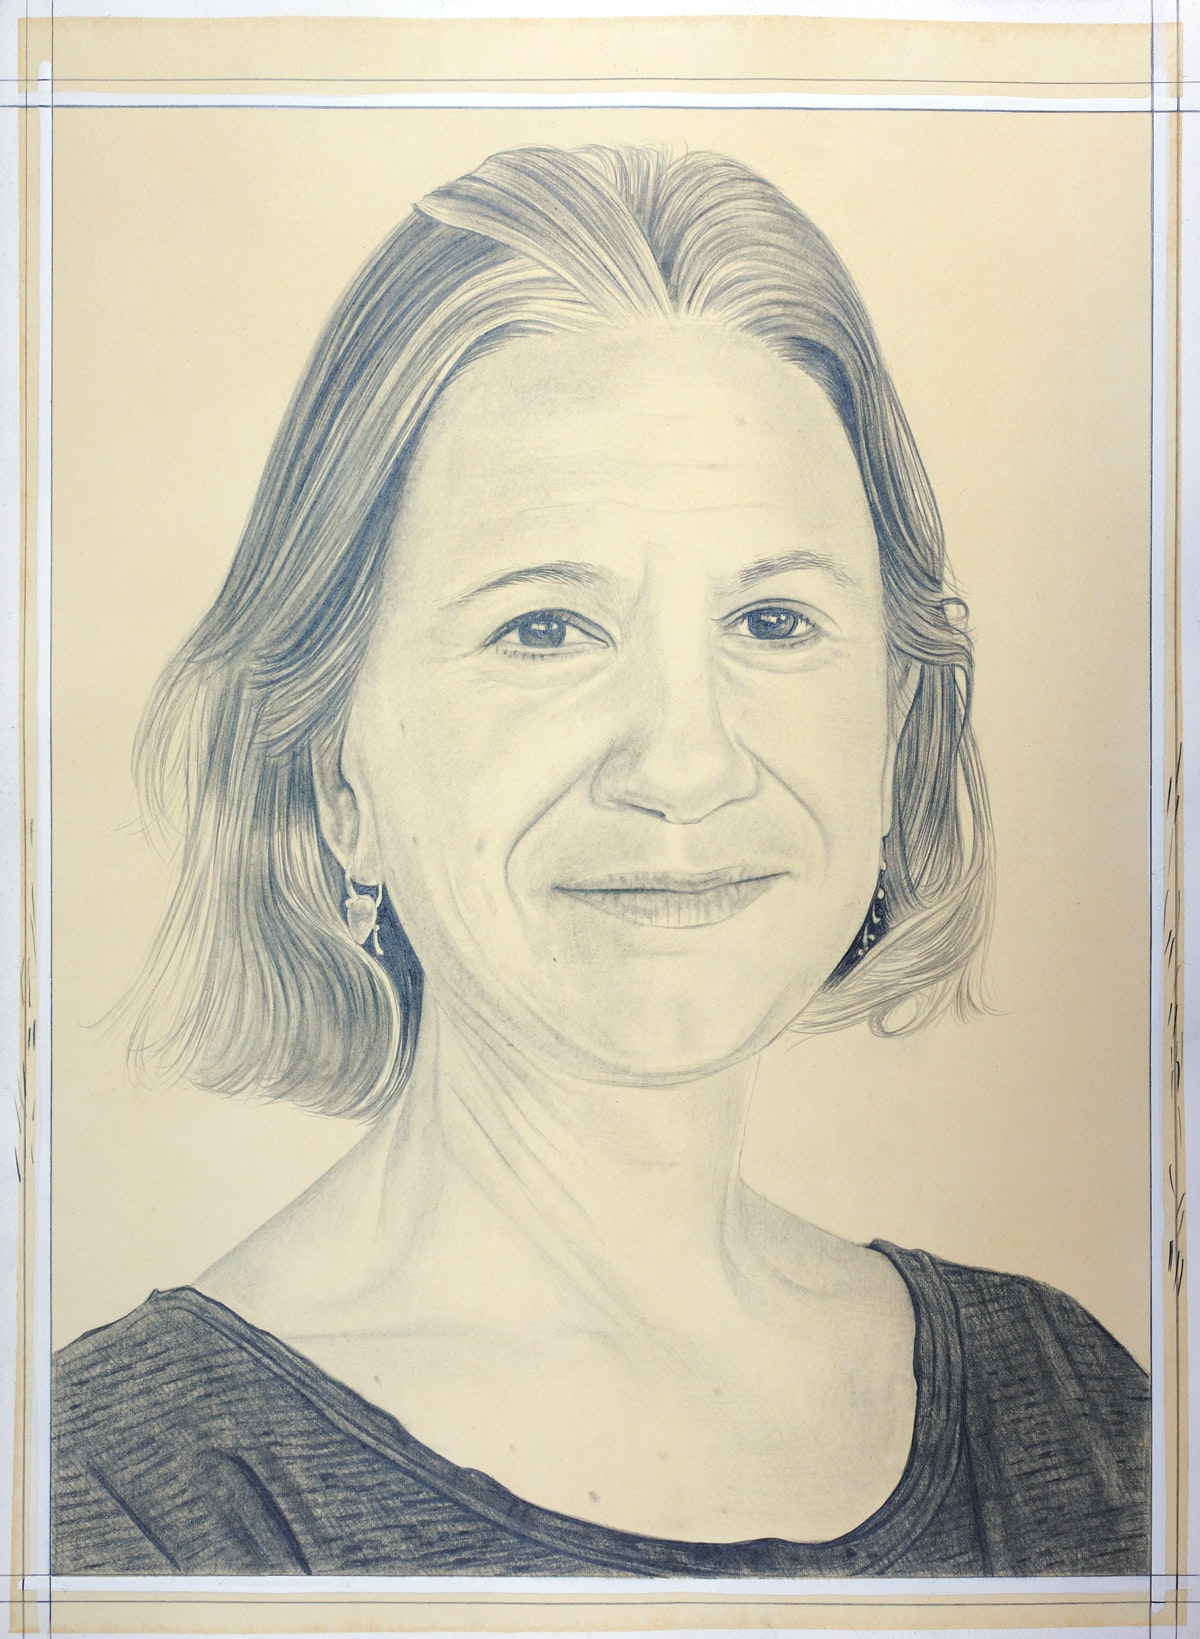 Portrait of Marina Adams, pencil on paper by Phong Bui.